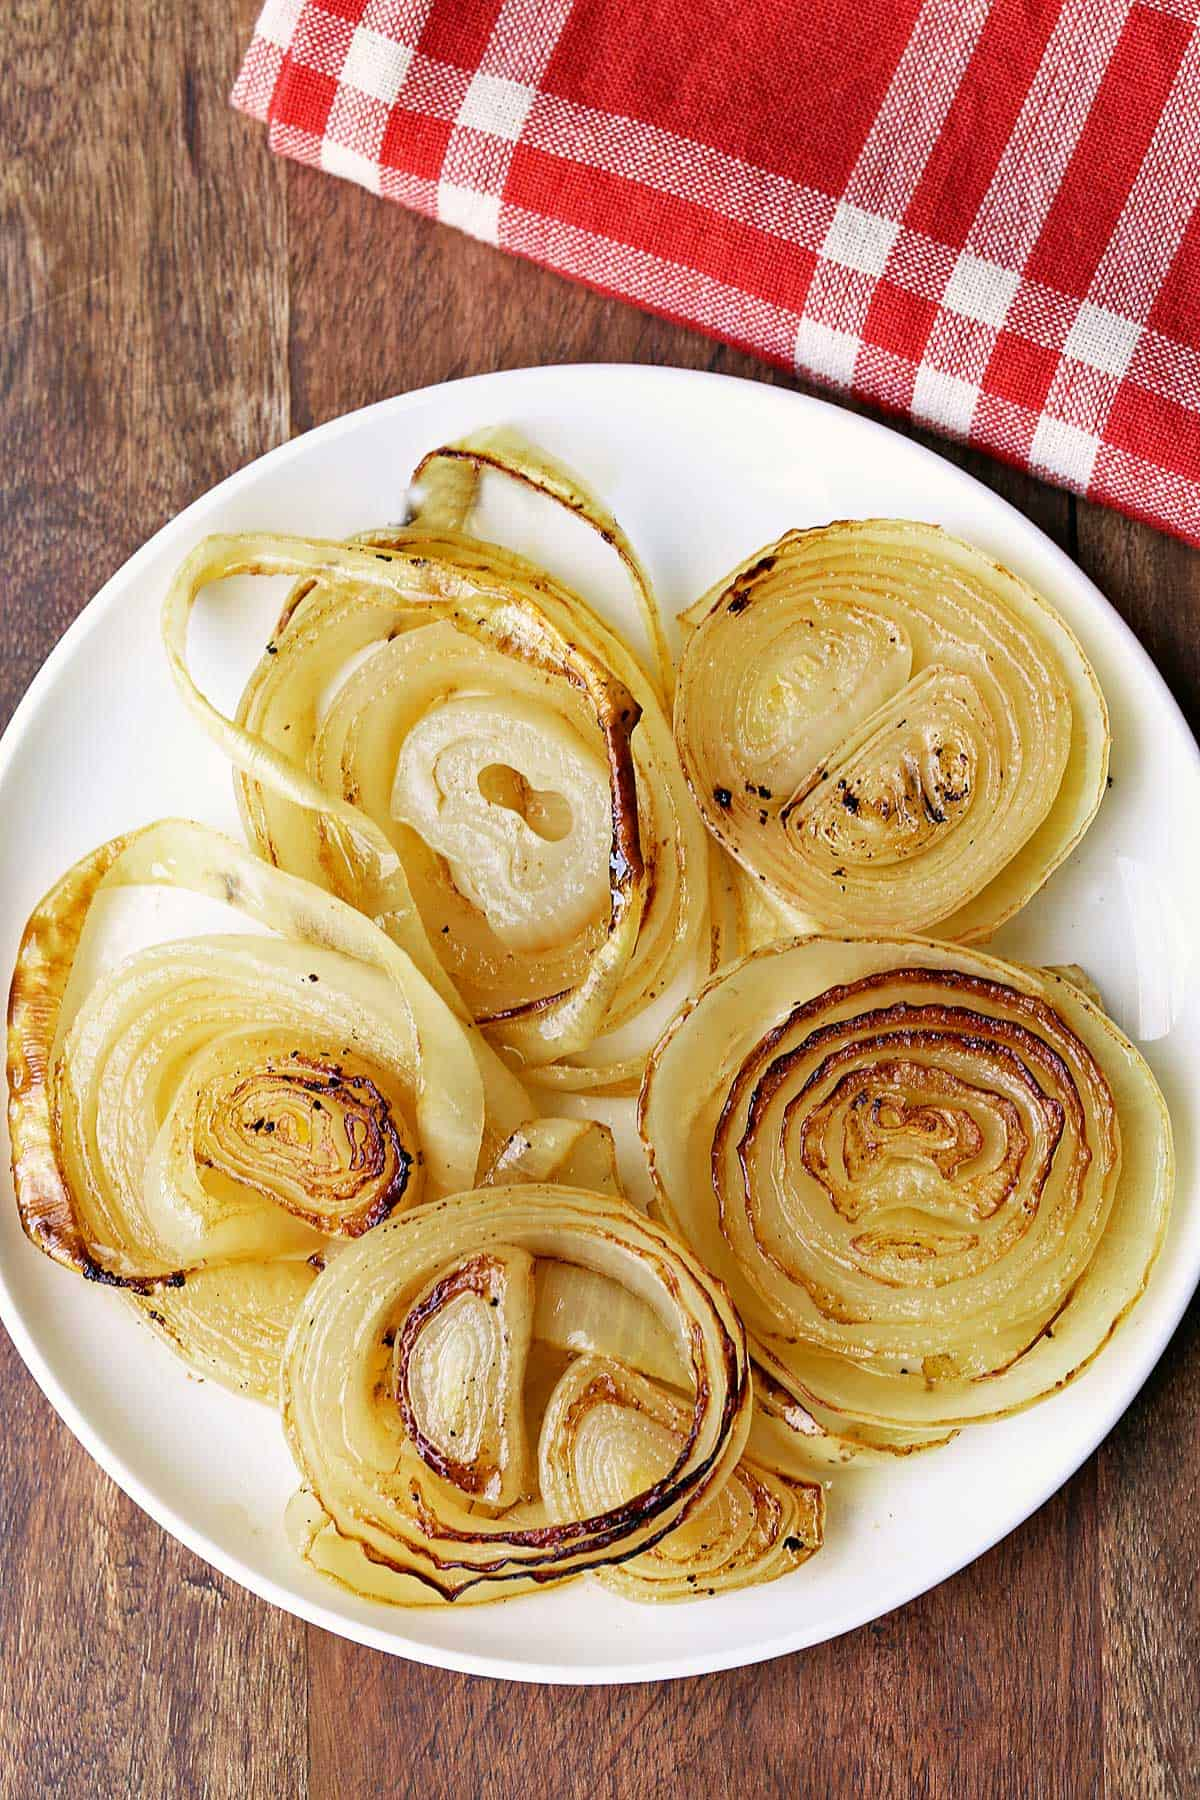 Baked onions served on a white plate with a red napkin.